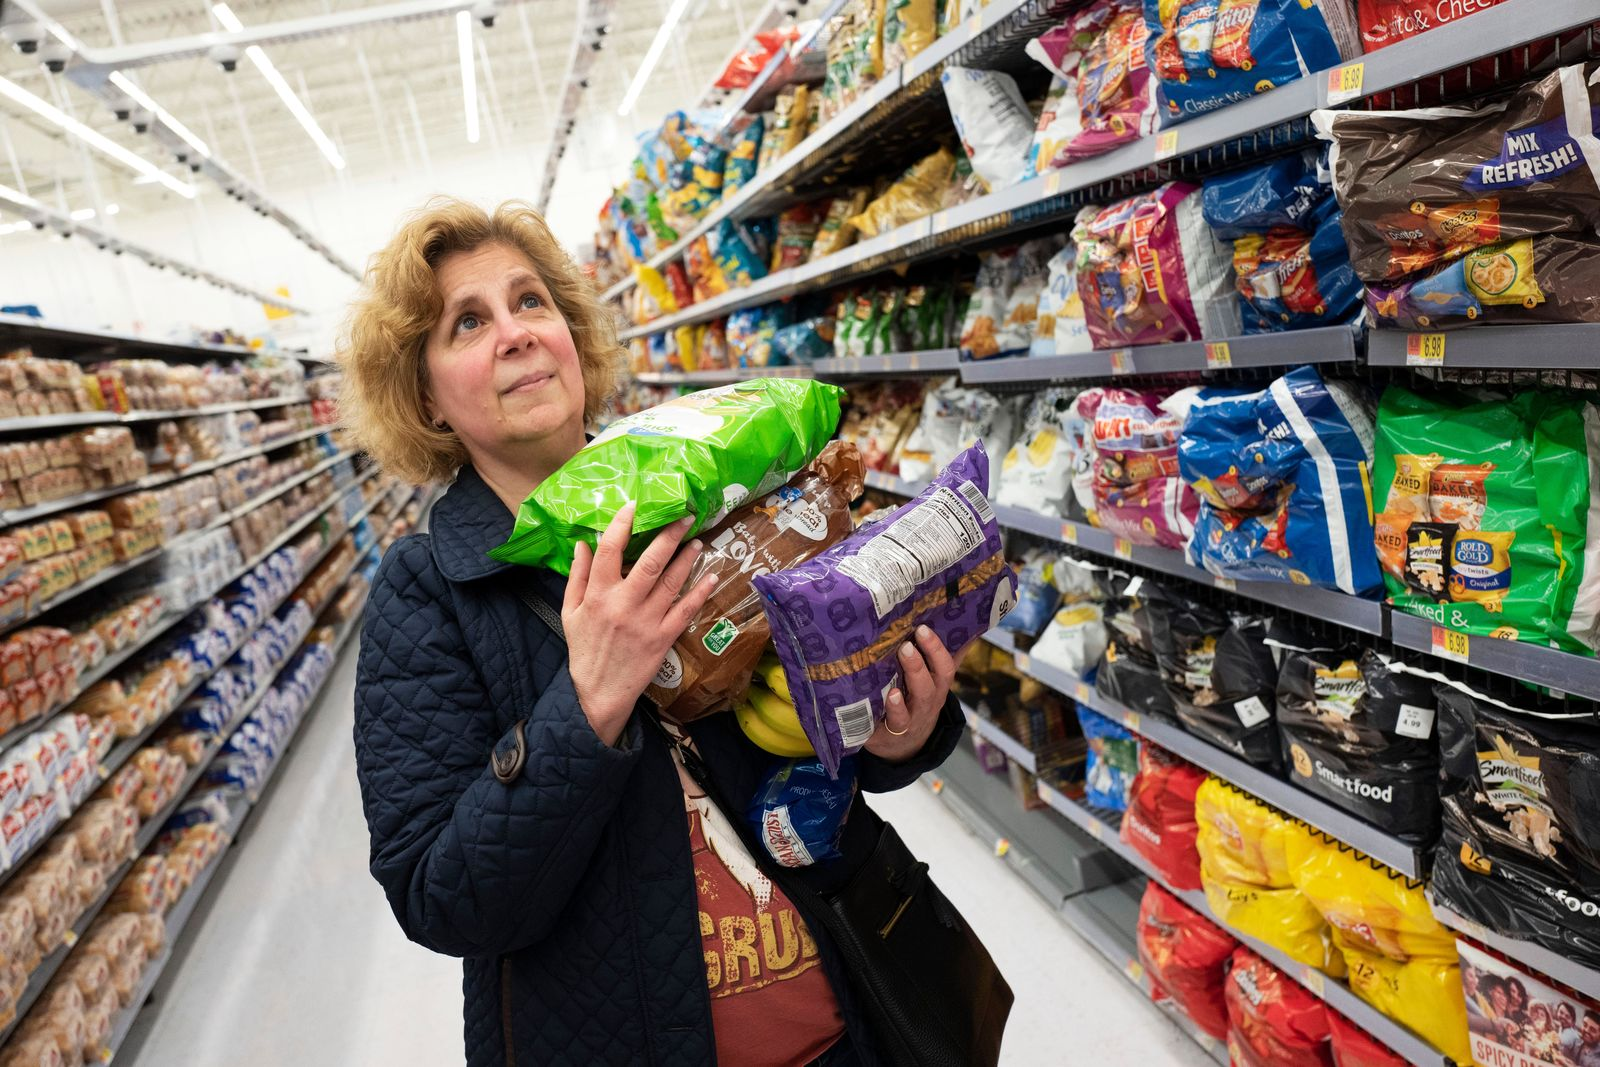 FILE - In this April 24, 2019, file photo Marcy Seinberg shops at a Walmart Neighborhood Market in Levittown, N.Y. (AP Photo/Mark Lennihan, File)